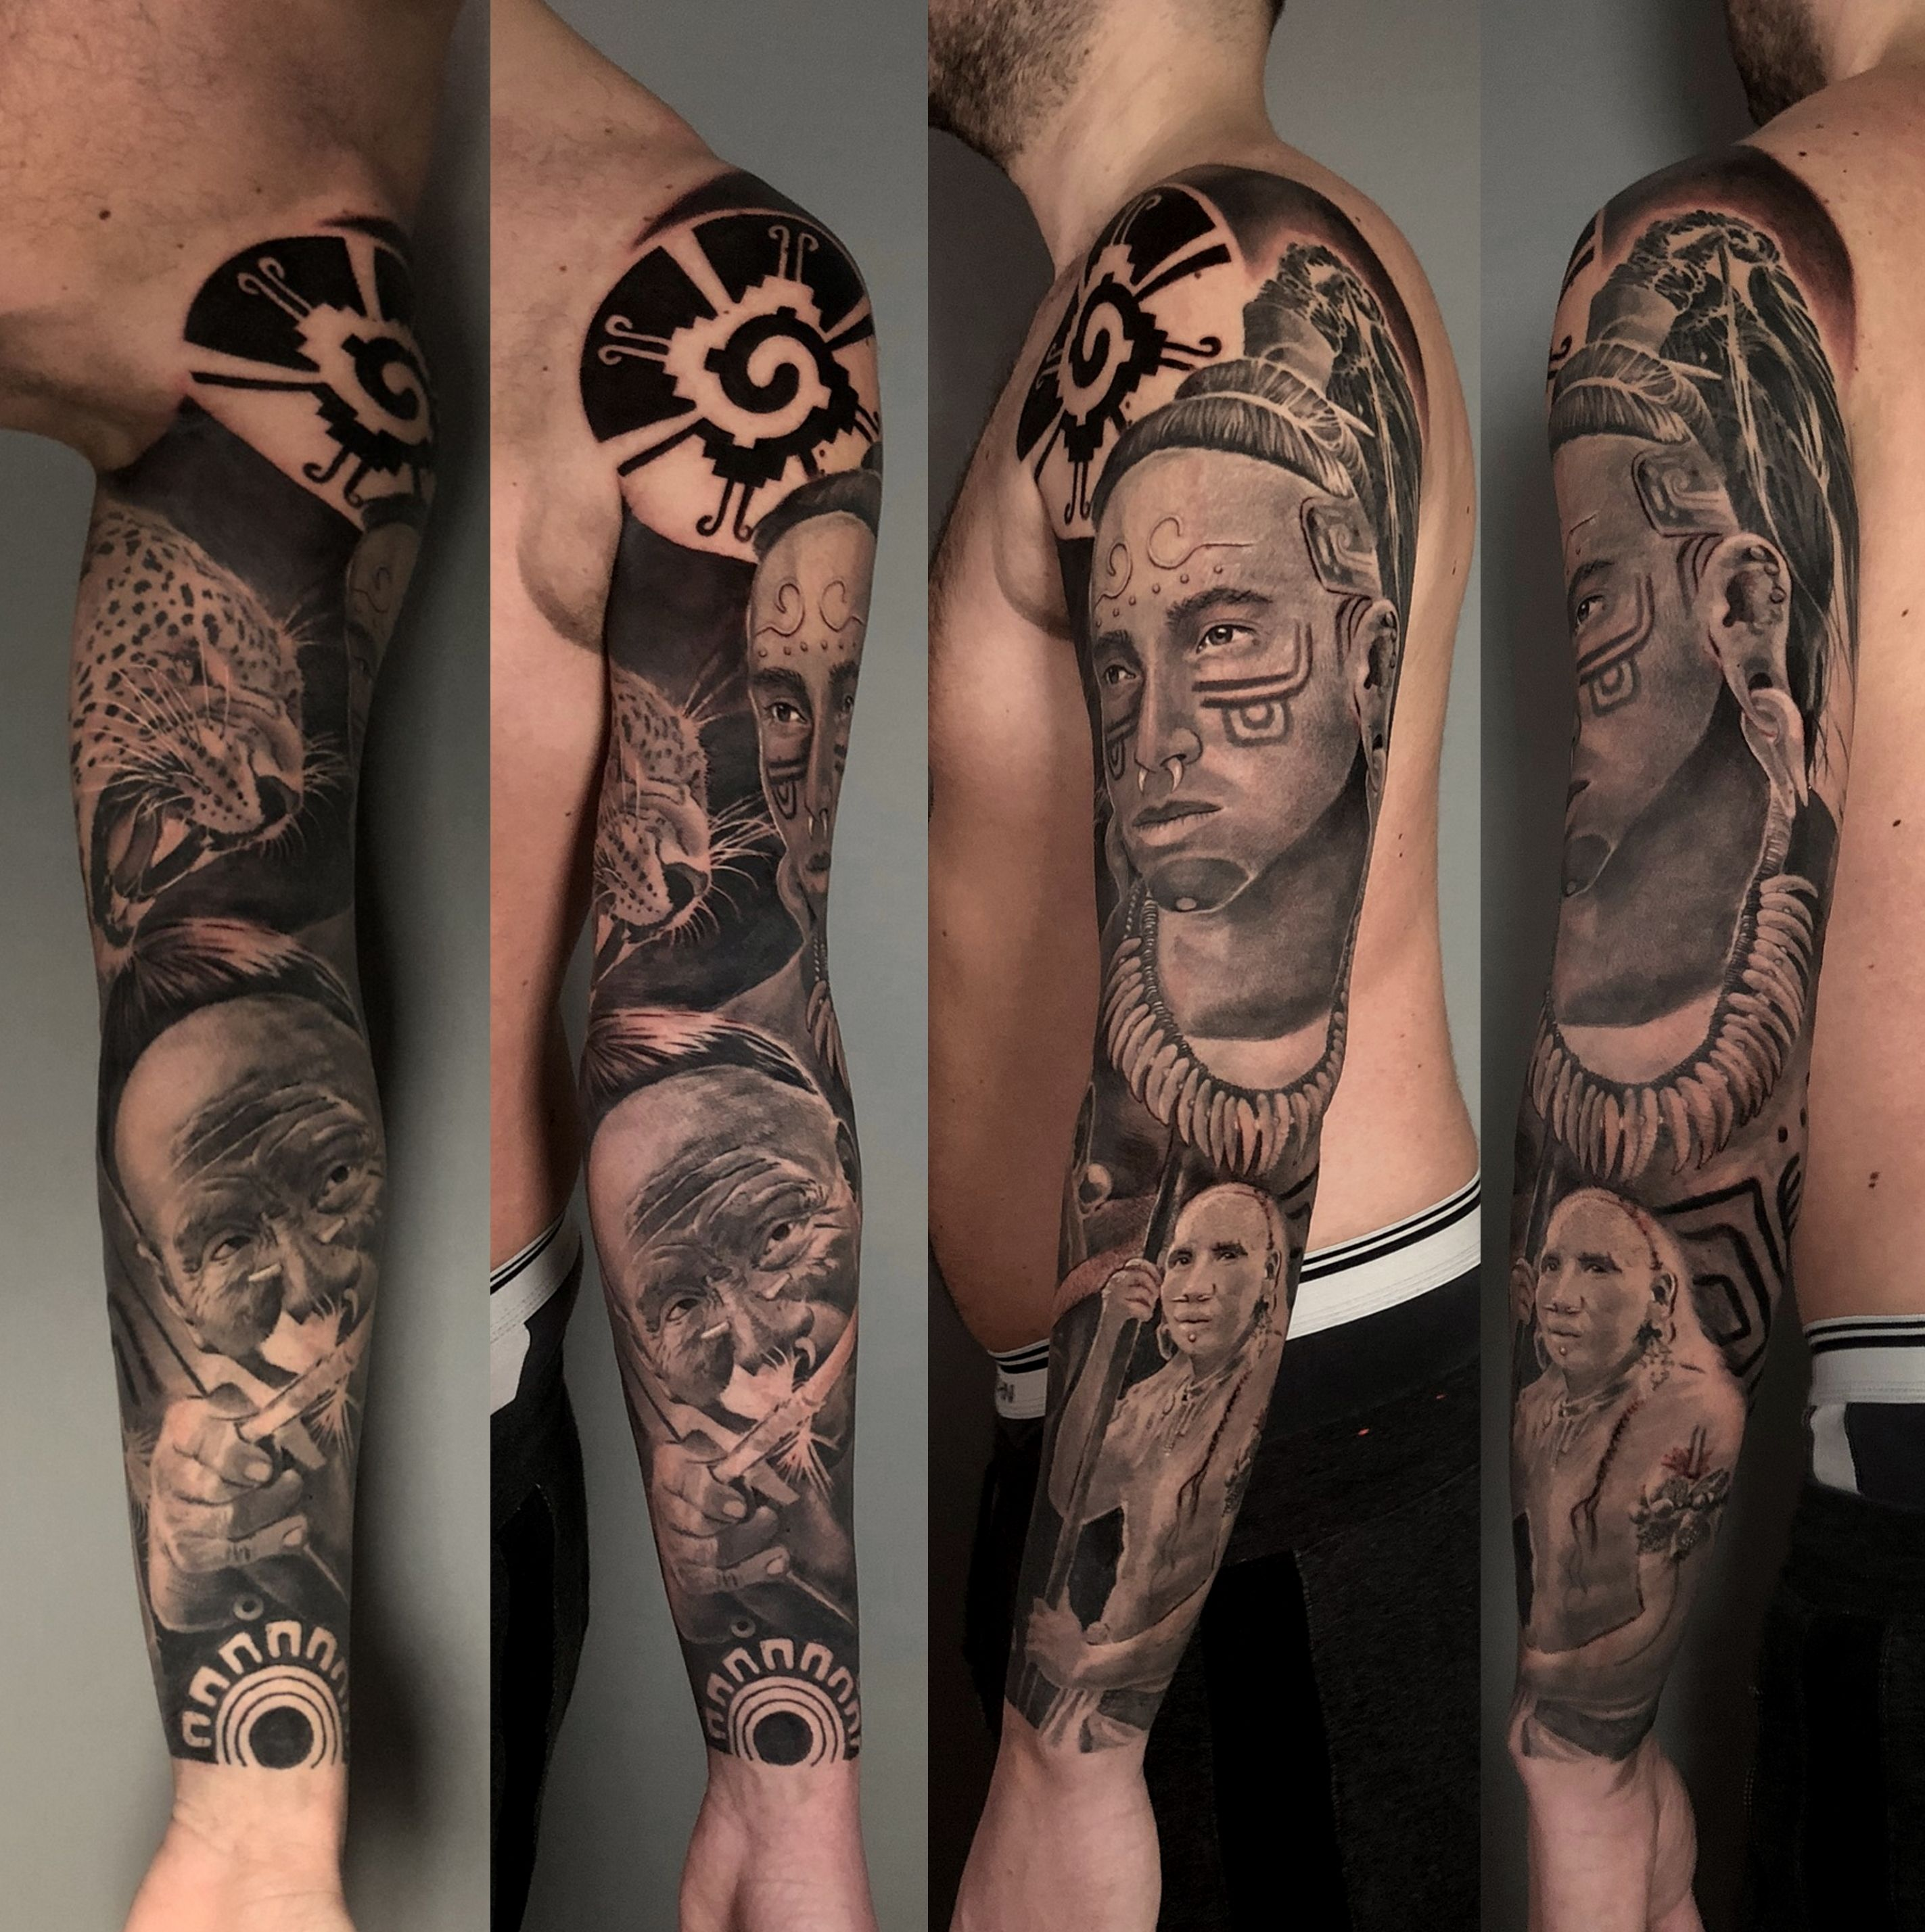 Aztec Mayan Full Sleeve In 2020 Black And Grey Tattoos Sleeve Tattoos Full Sleeve